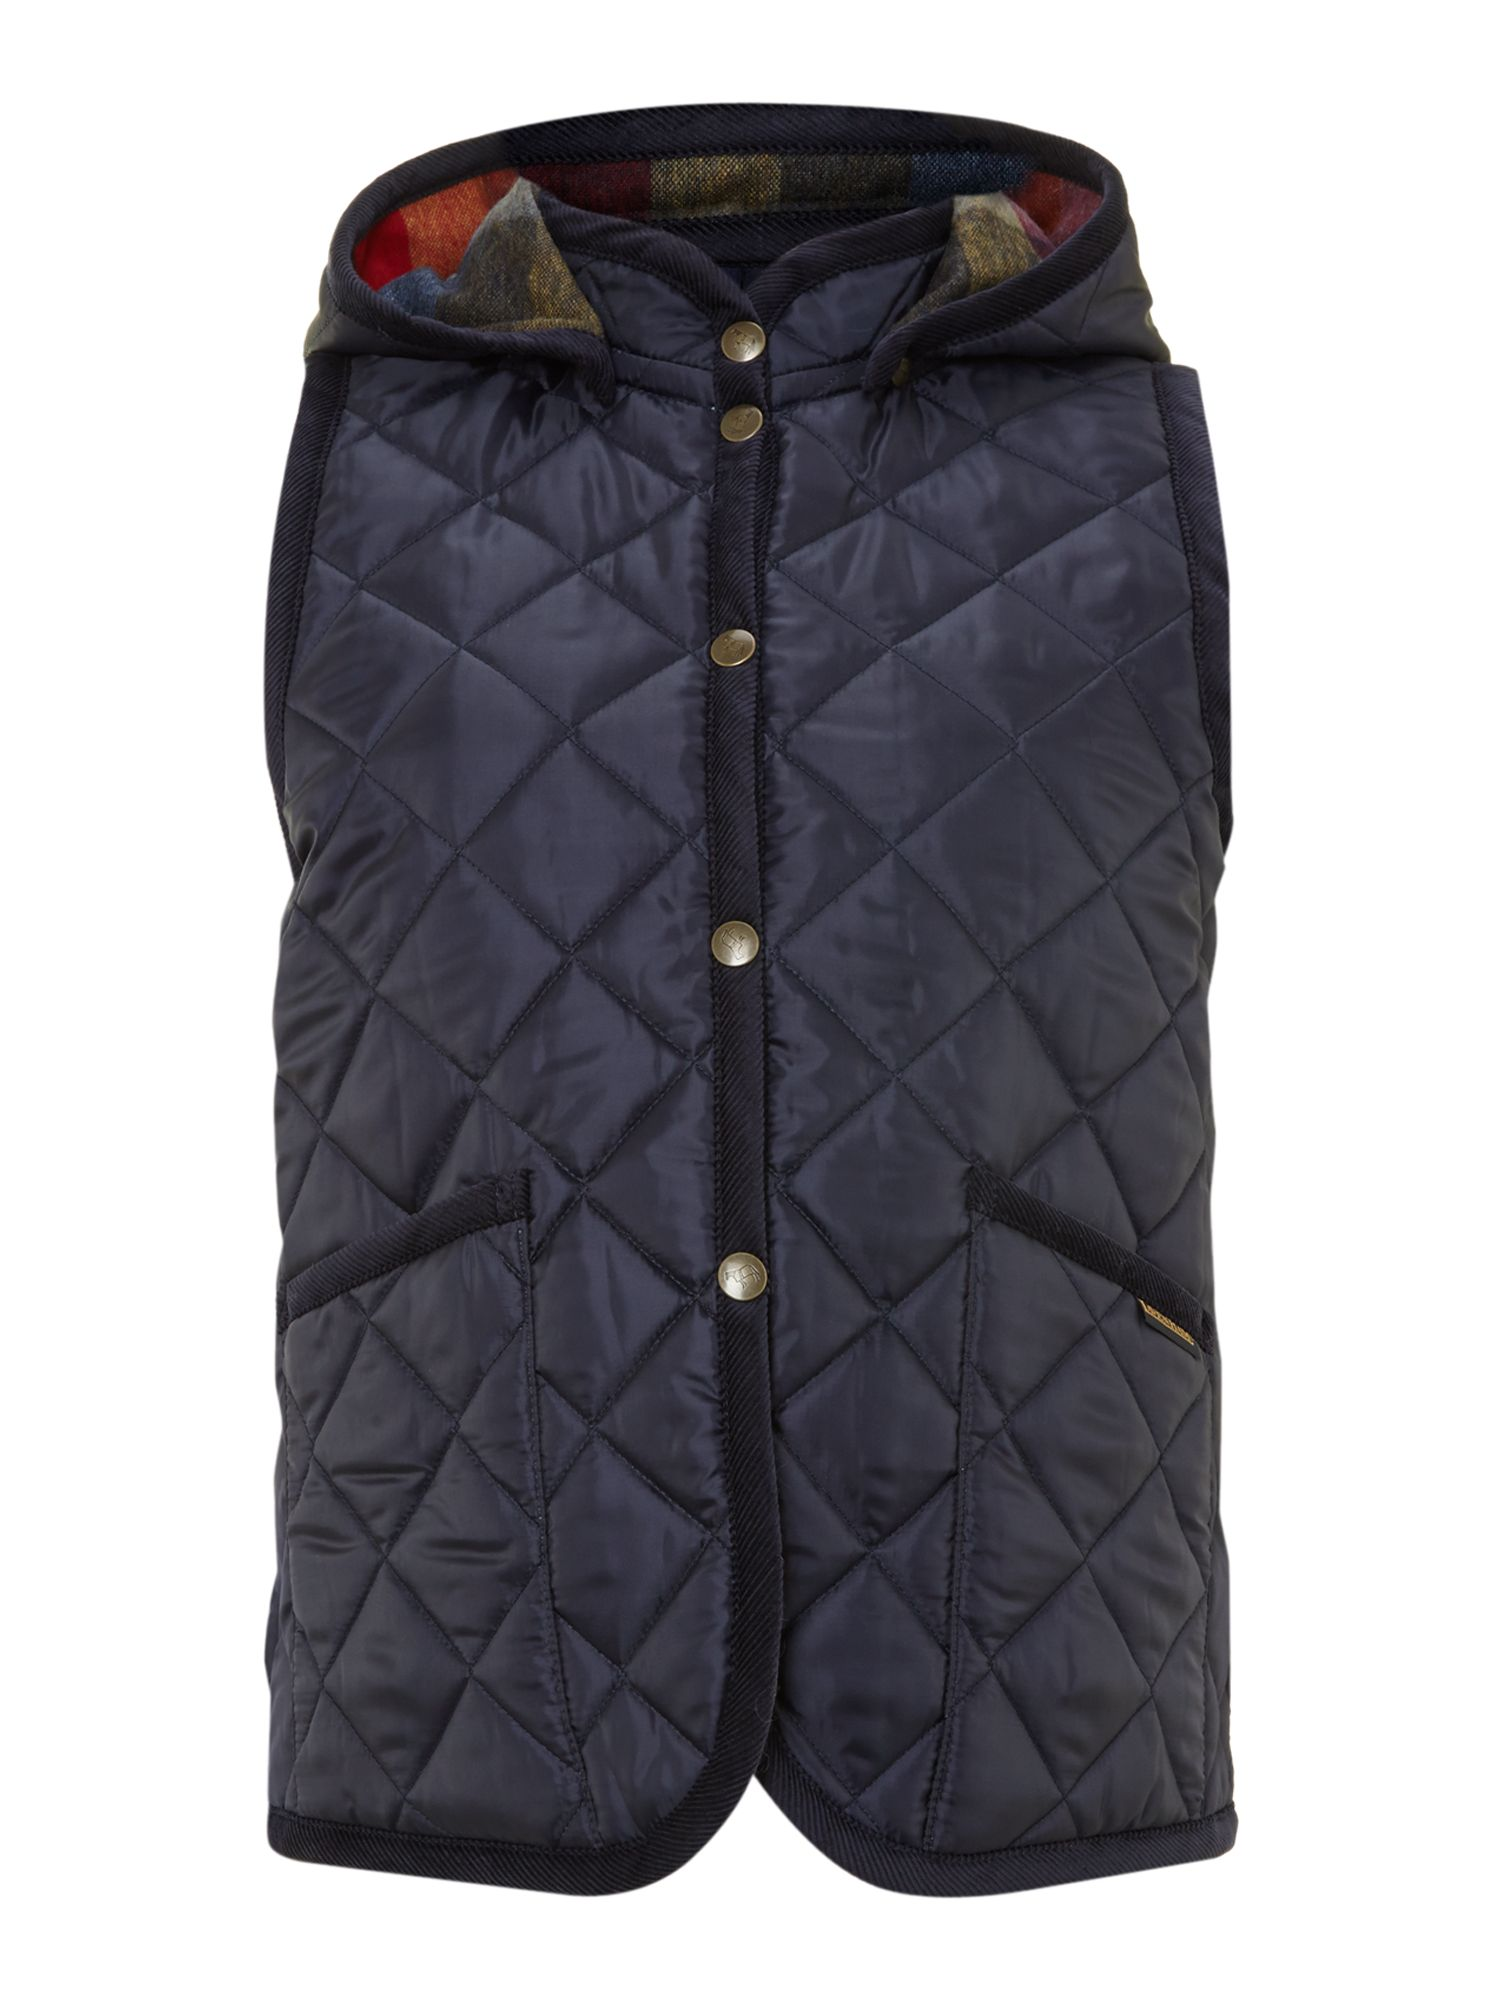 Mickfield Ladies Jacket